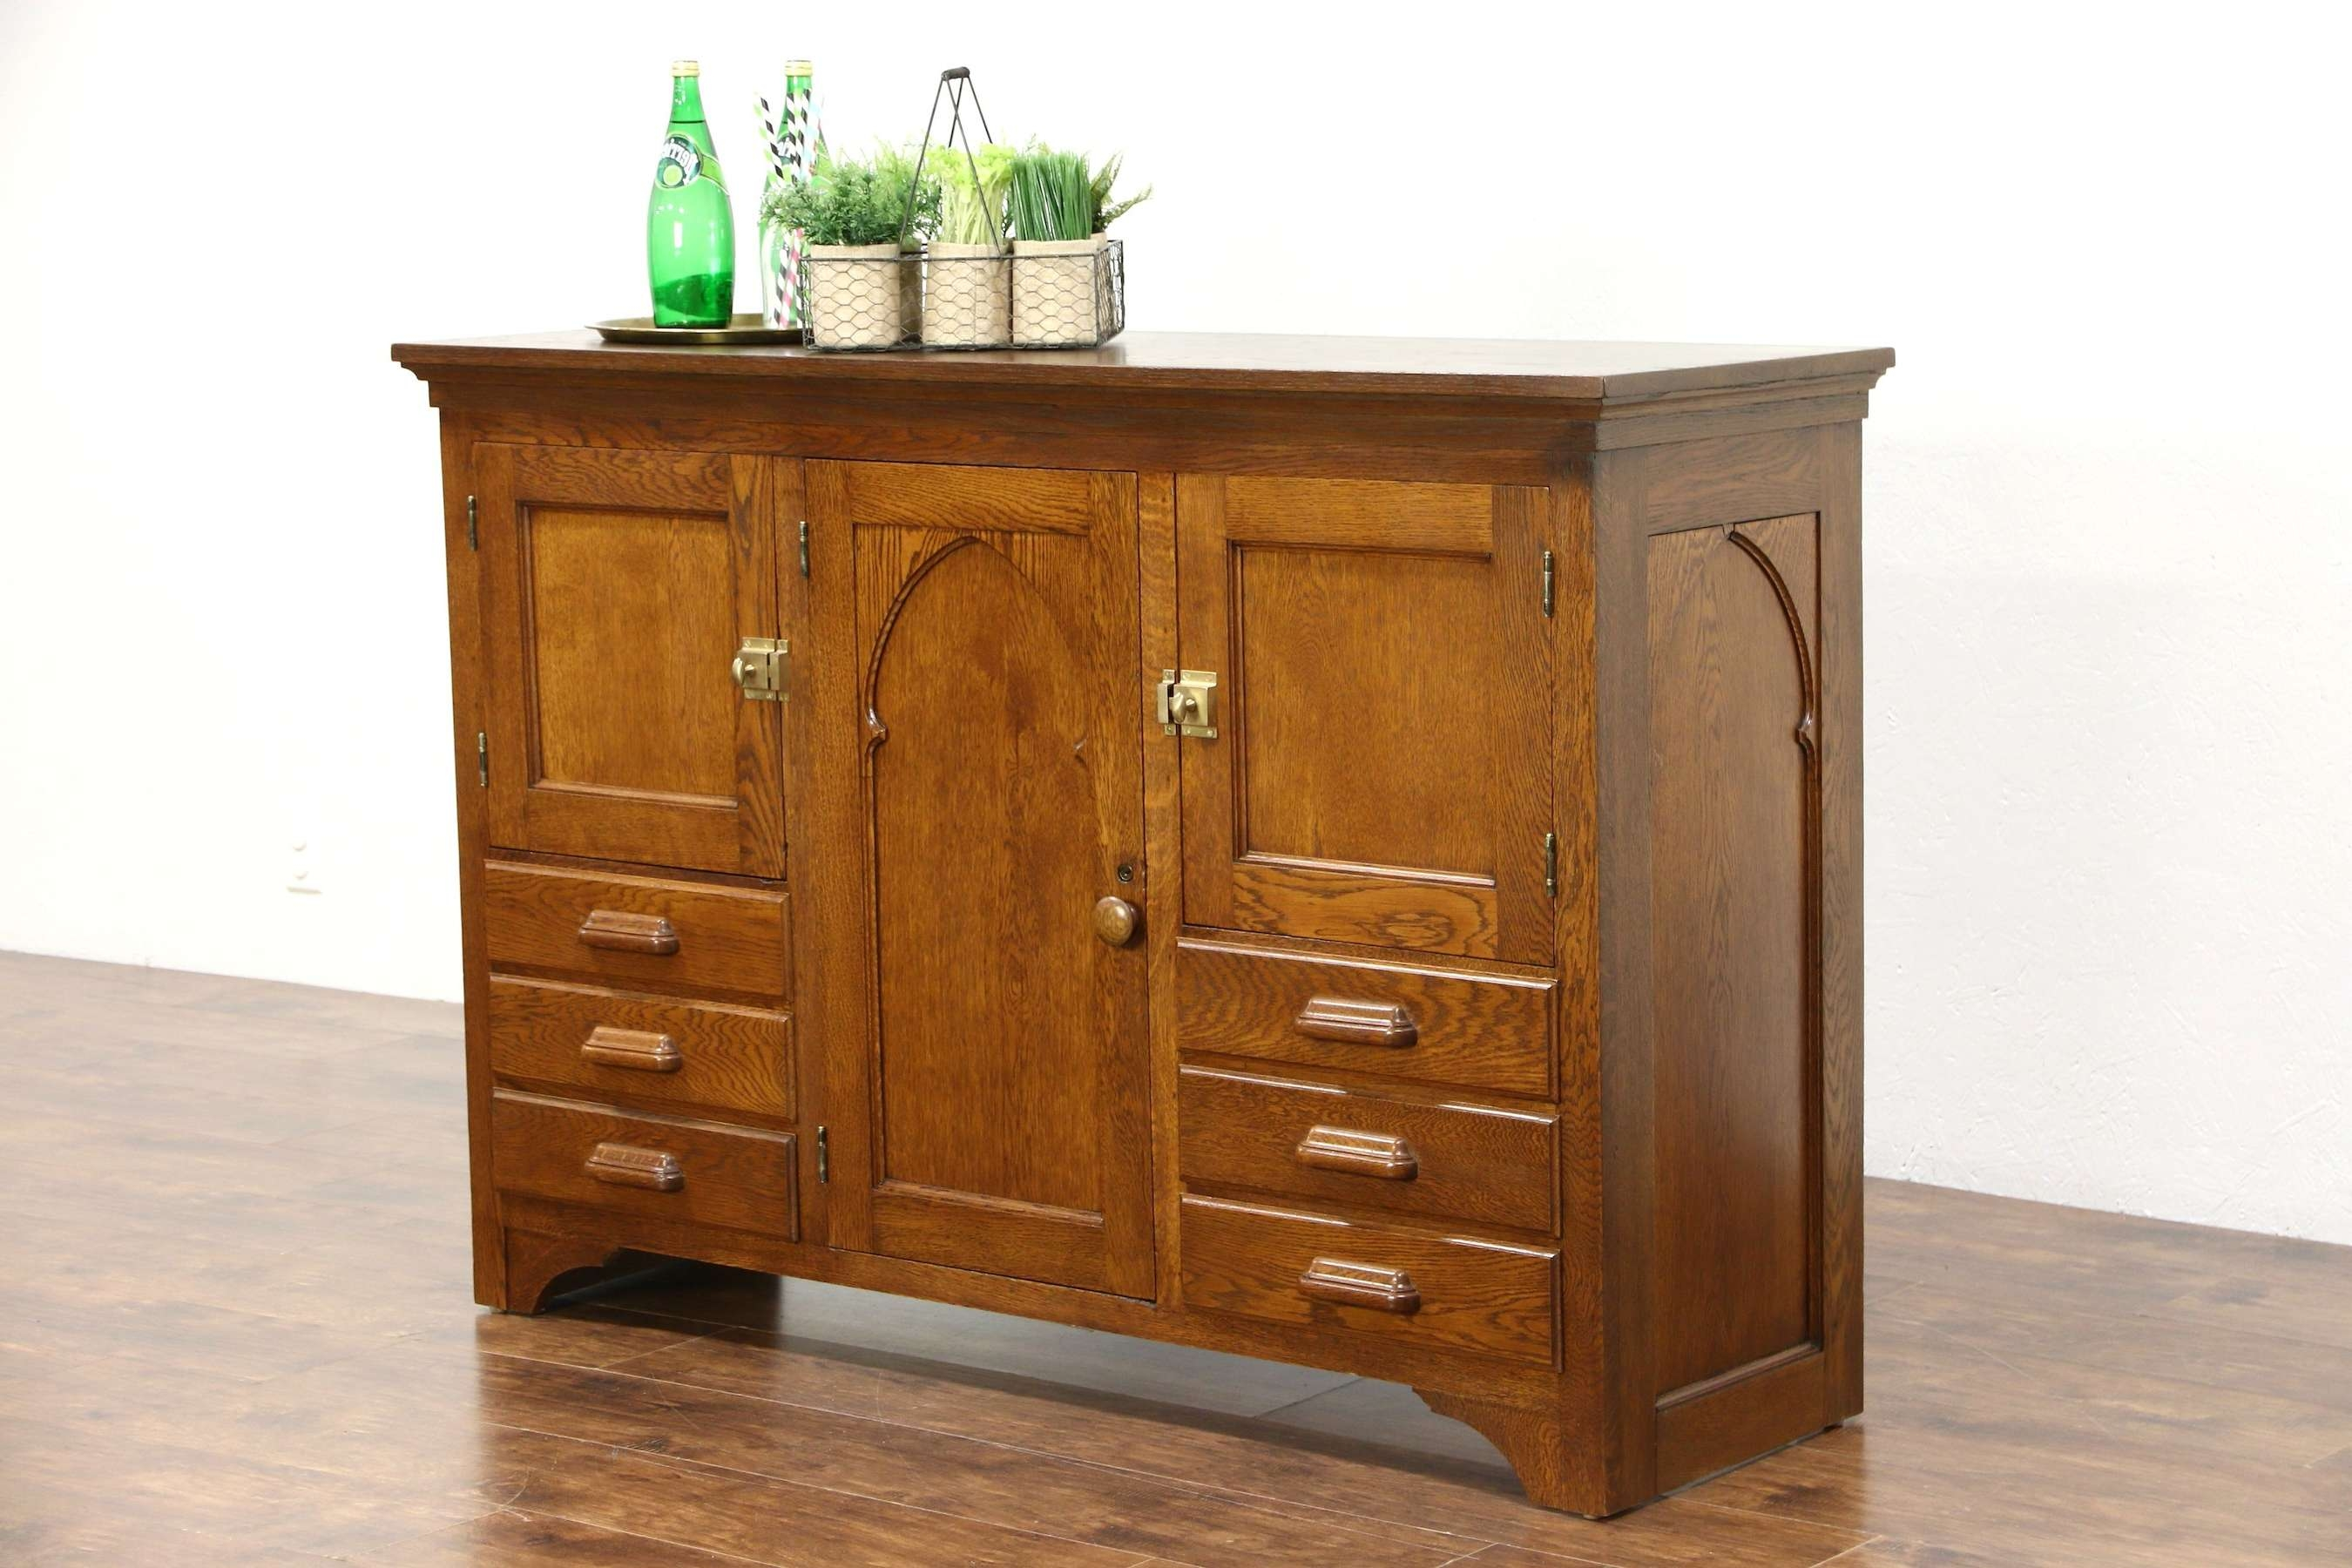 Sold – Gothic Carved 1890 Antique Oak Sideboard Cabinet Or Tv Pertaining To Antique Oak Sideboards (View 9 of 20)